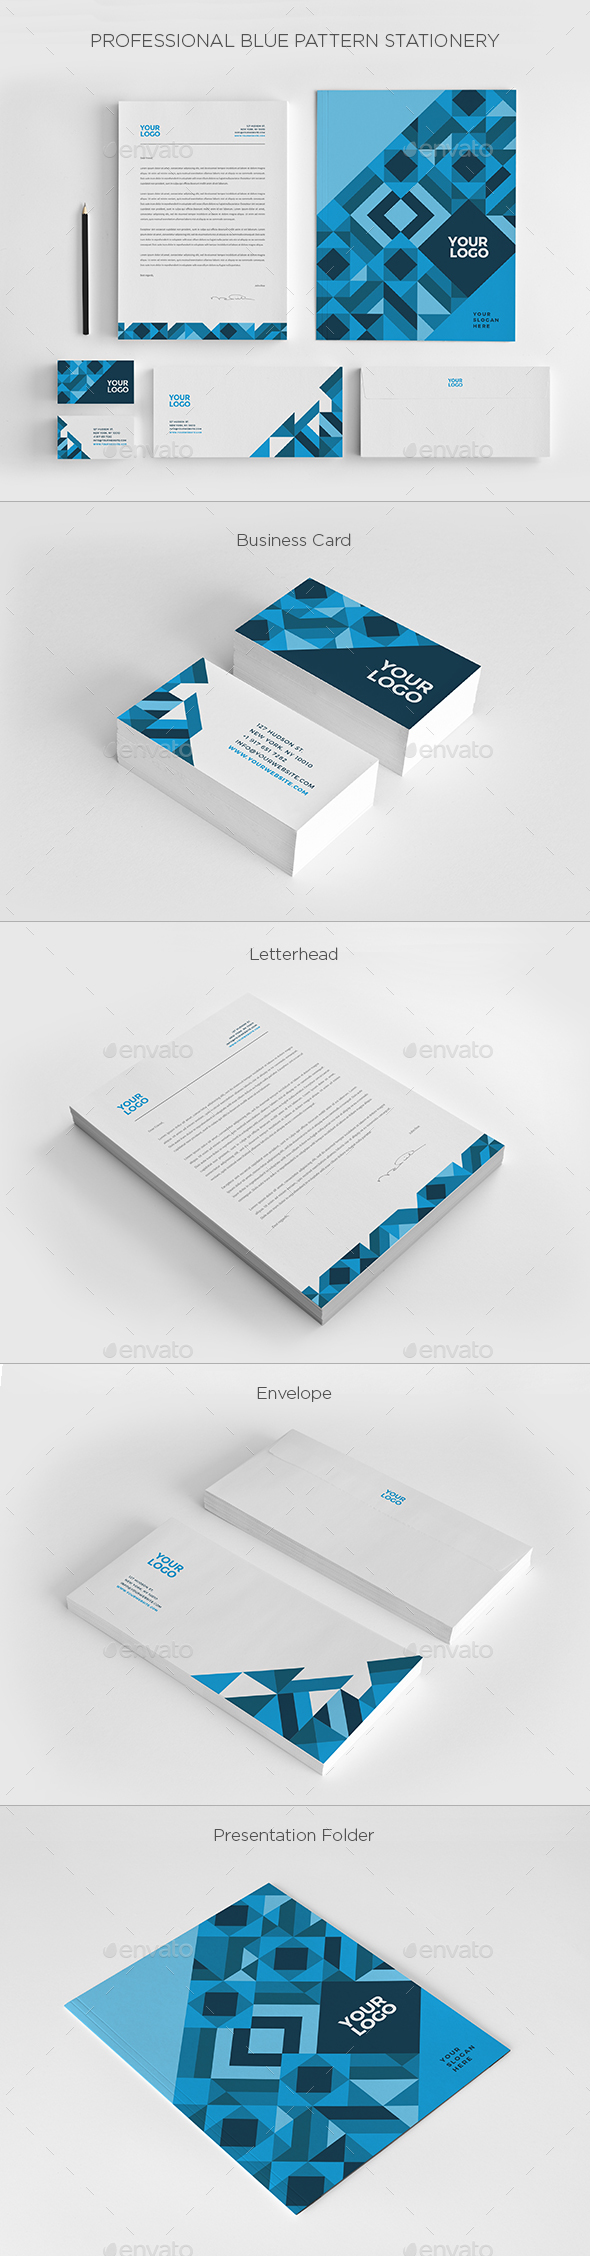 Professional Blue Pattern Stationery - Stationery Print Templates